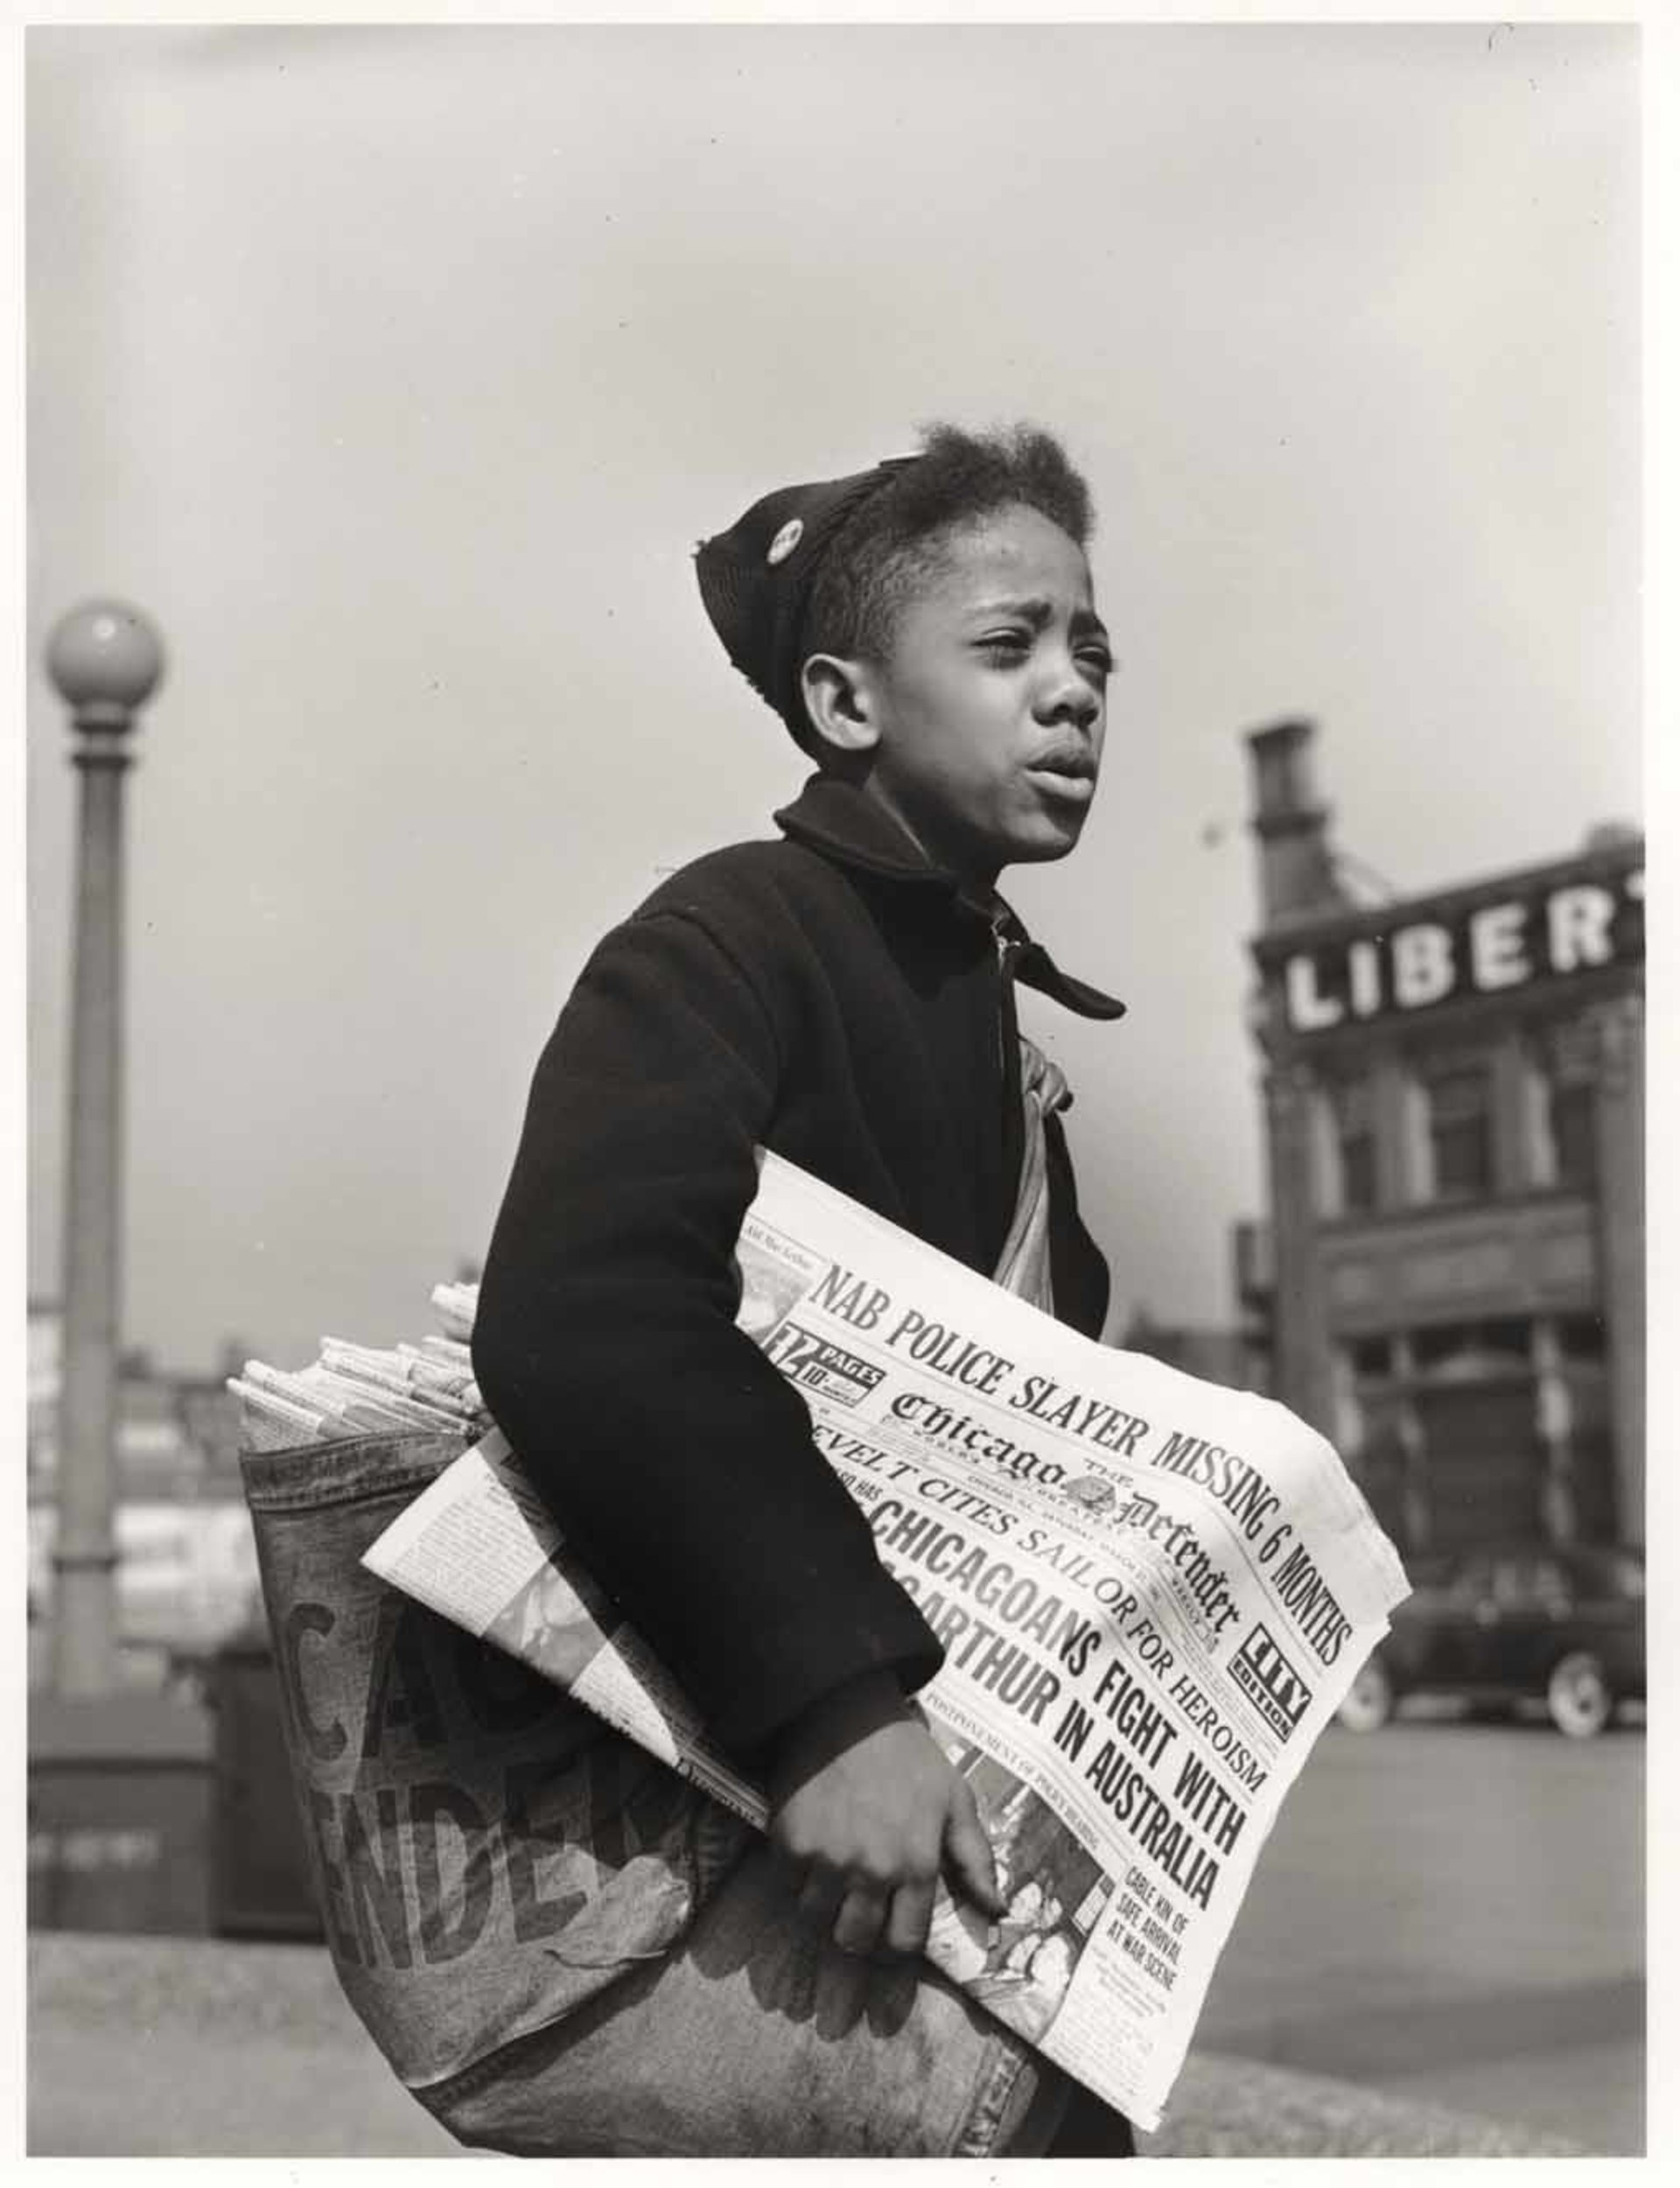 Newsboy selling the Chicago Defender, a leading Negro newspaper , April 1942. Photo by Jack Delano. Library of Congress LC-USW38-000698-D.